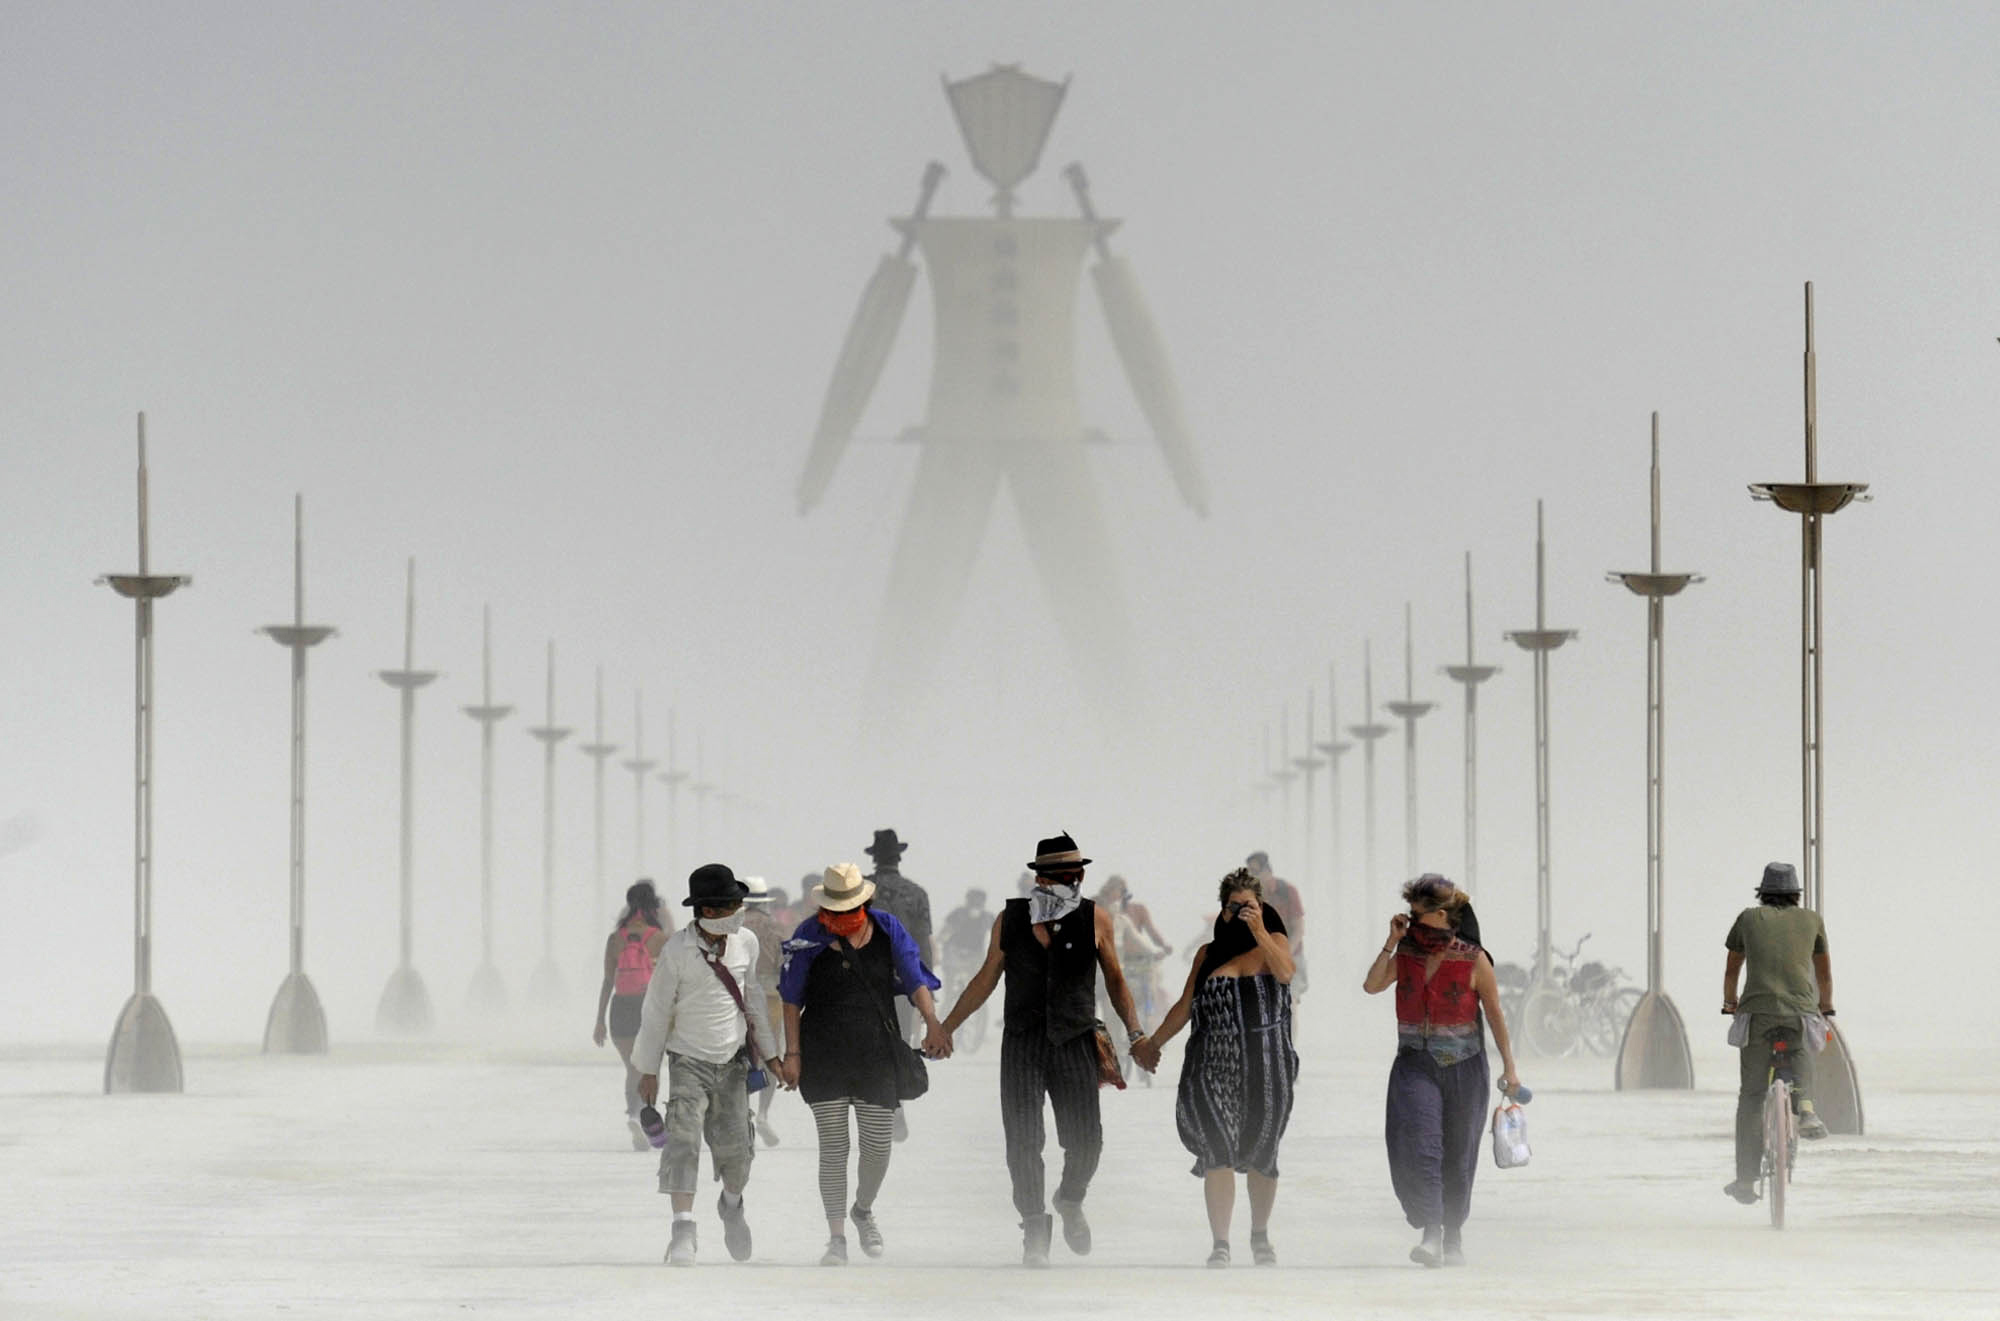 Participants walk through dust at the annual Burning Man event in the Black Rock Desert of Gerlach, Nev., on Aug. 29, 2014.